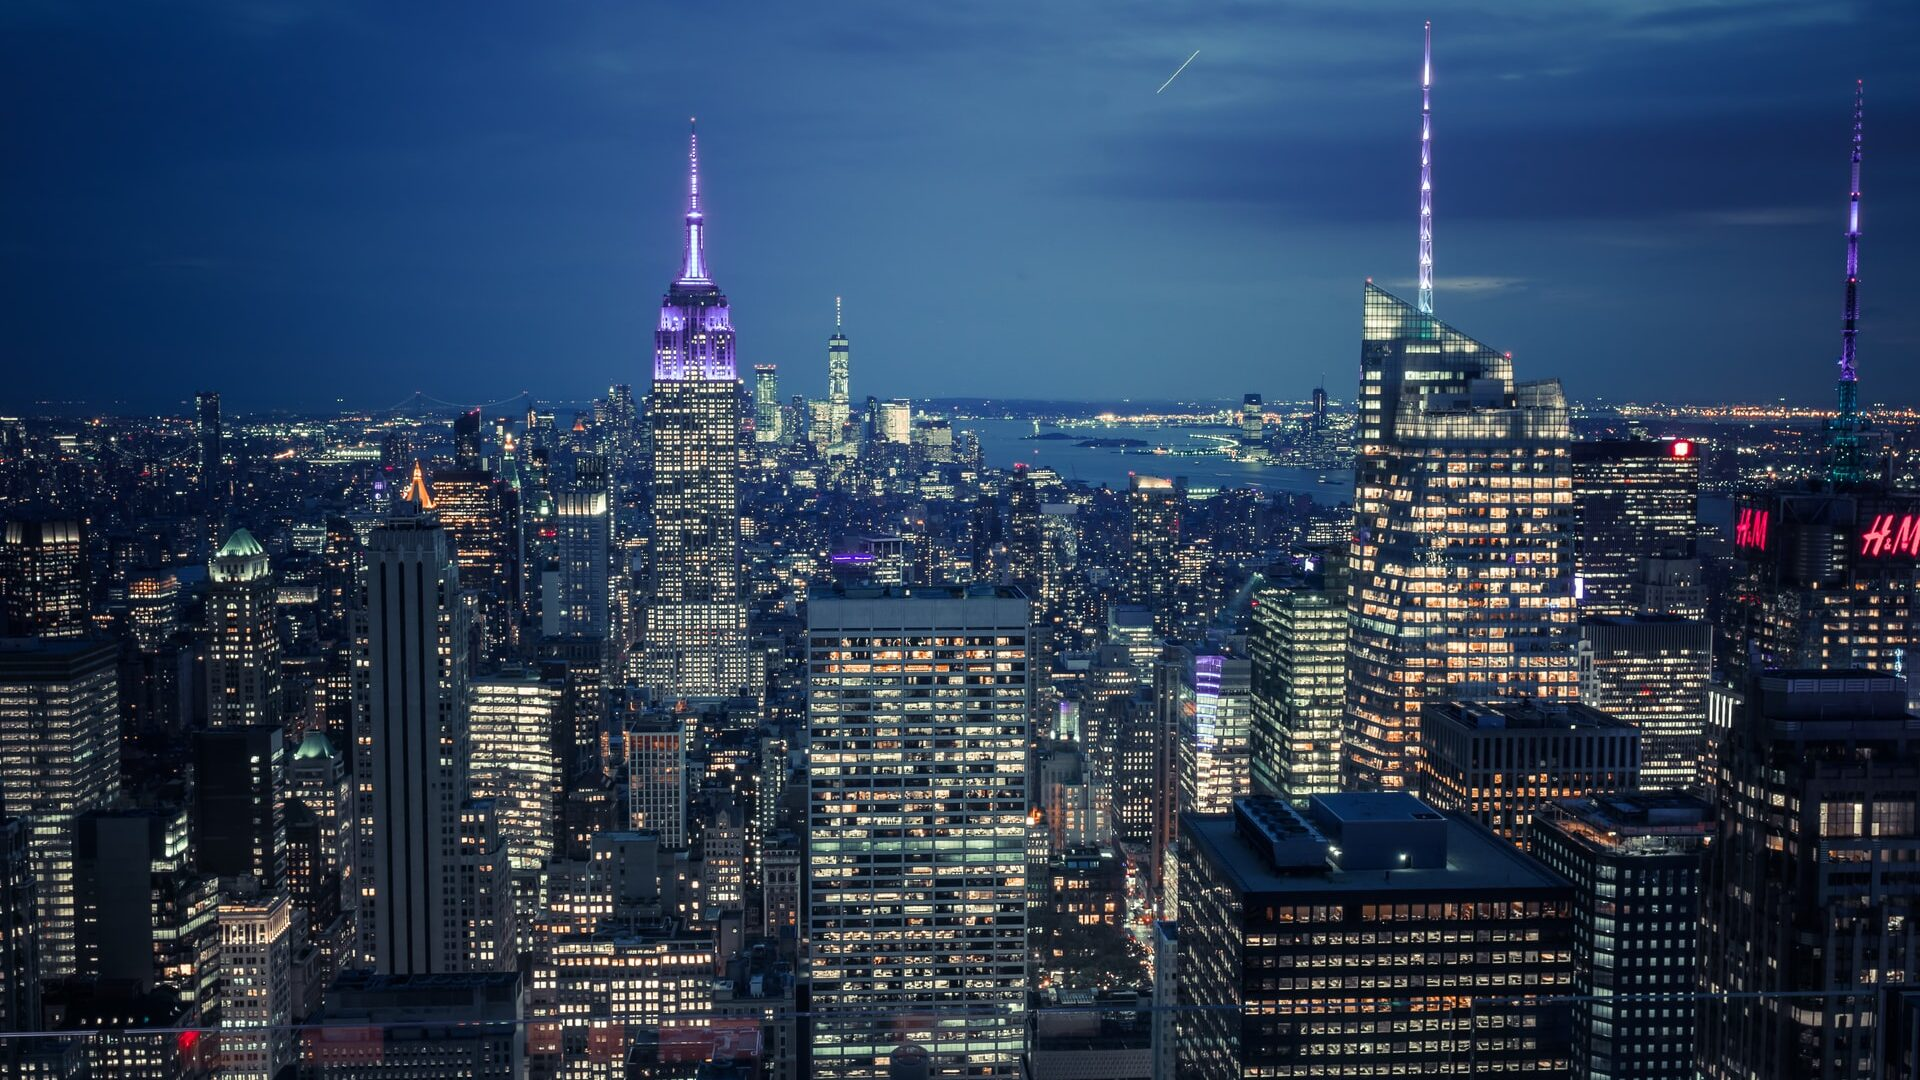 New York during the night